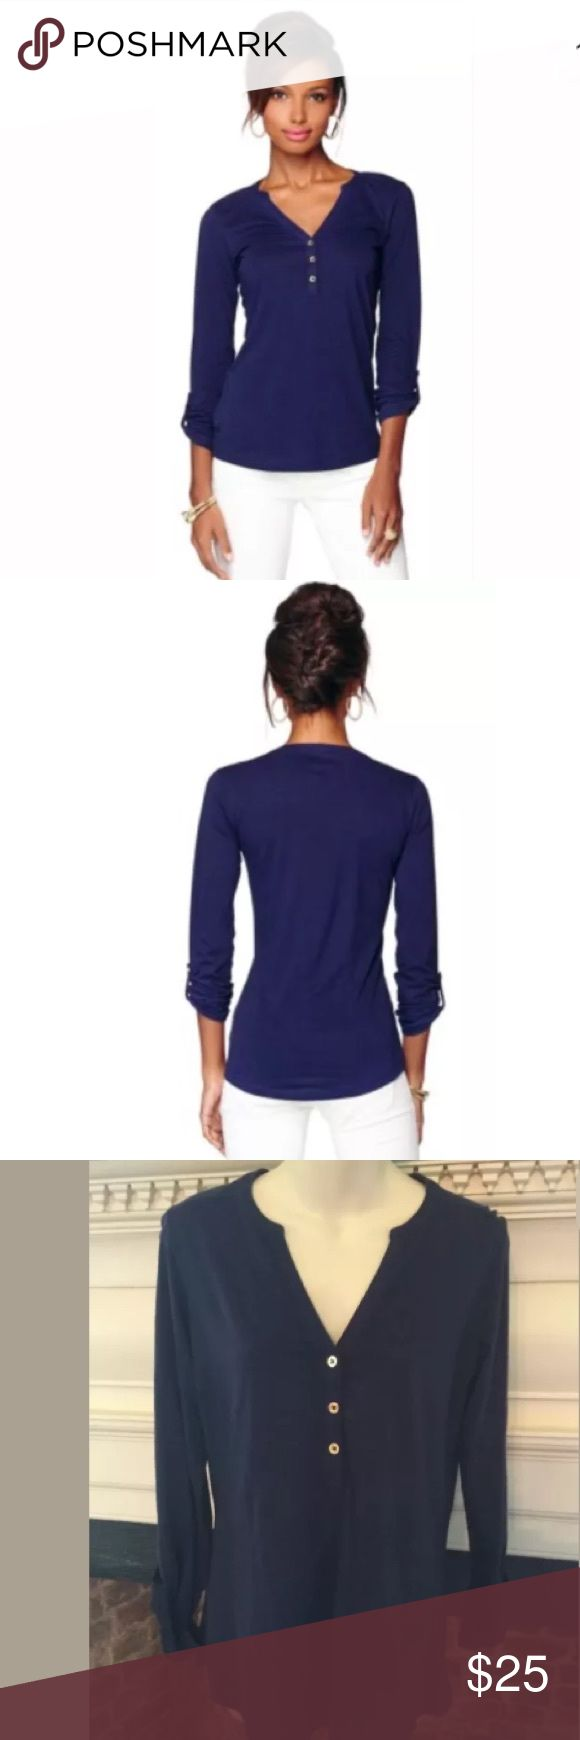 Lilly Pulitzer Janelle Henley Top Shirt True Navy Excellent condition! Lilly Pulitzer Tops Tees - Long Sleeve